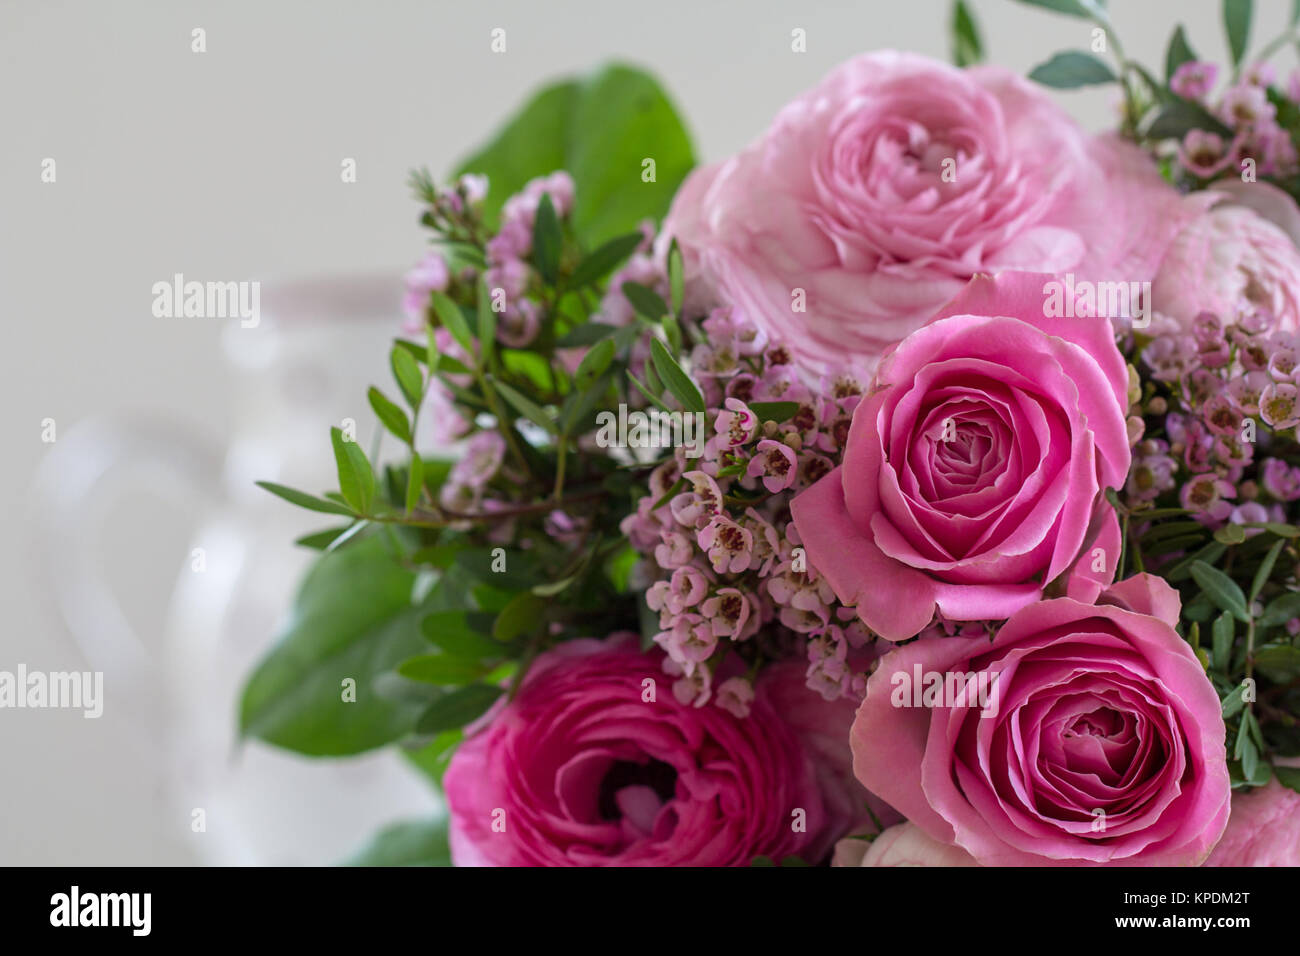 a great rose bouquet in rose tones is waiting on the table and waiting to be given away - Stock Image